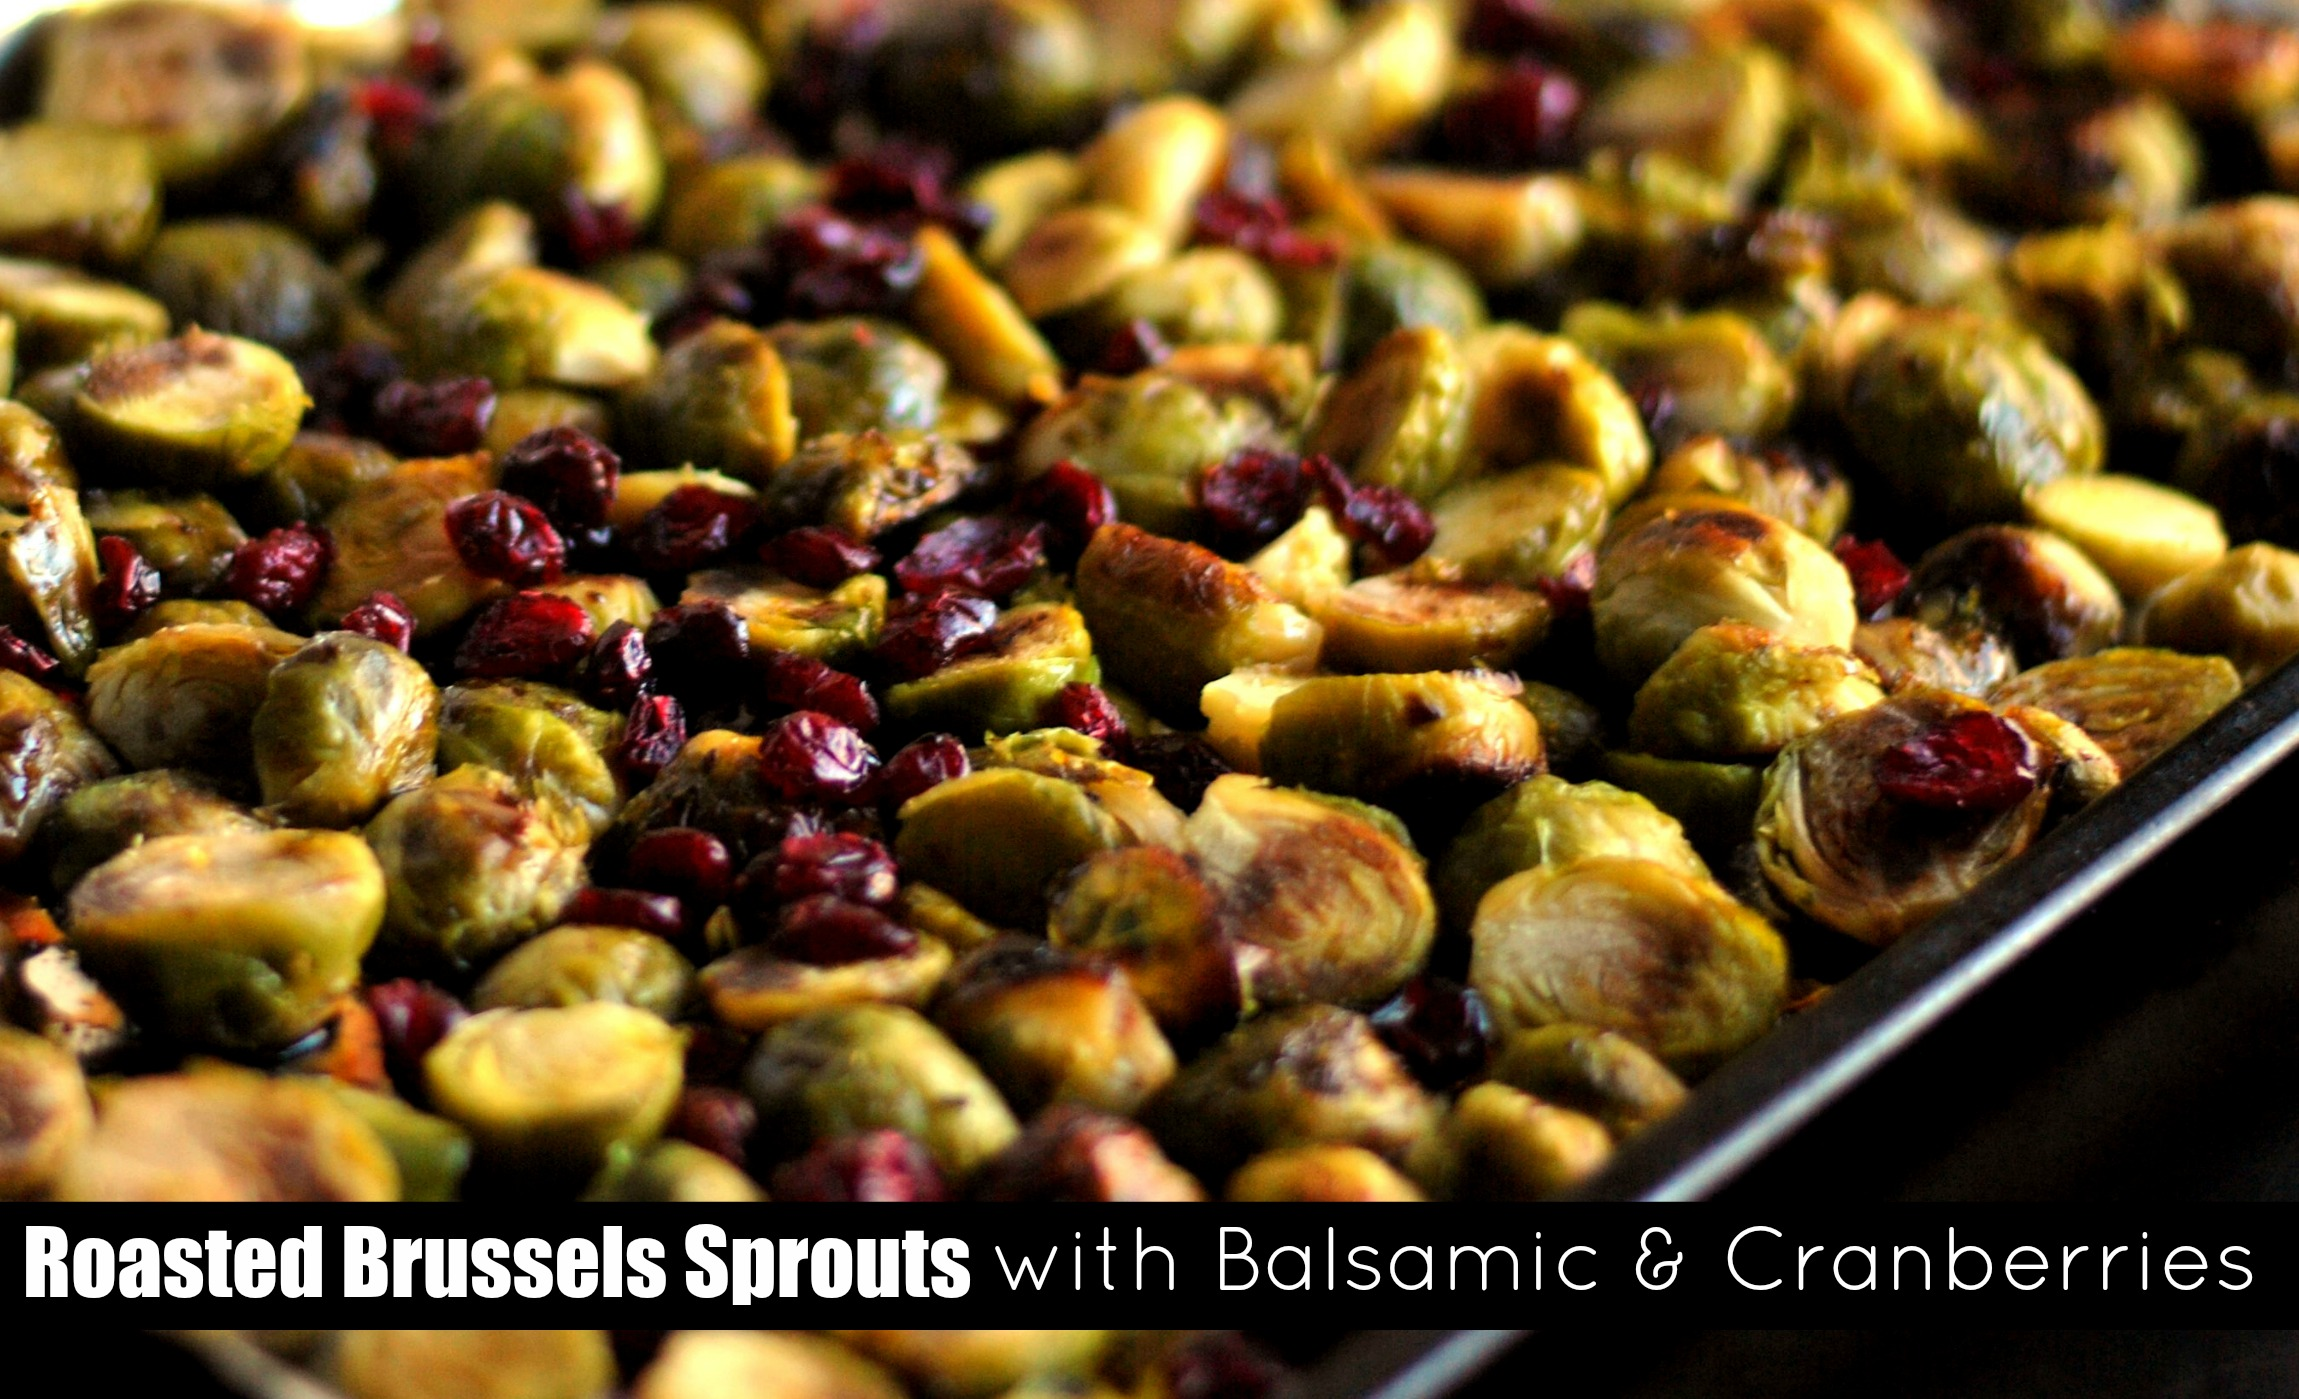 Roasted Brussels Sprouts with Balsamic & Cranberries